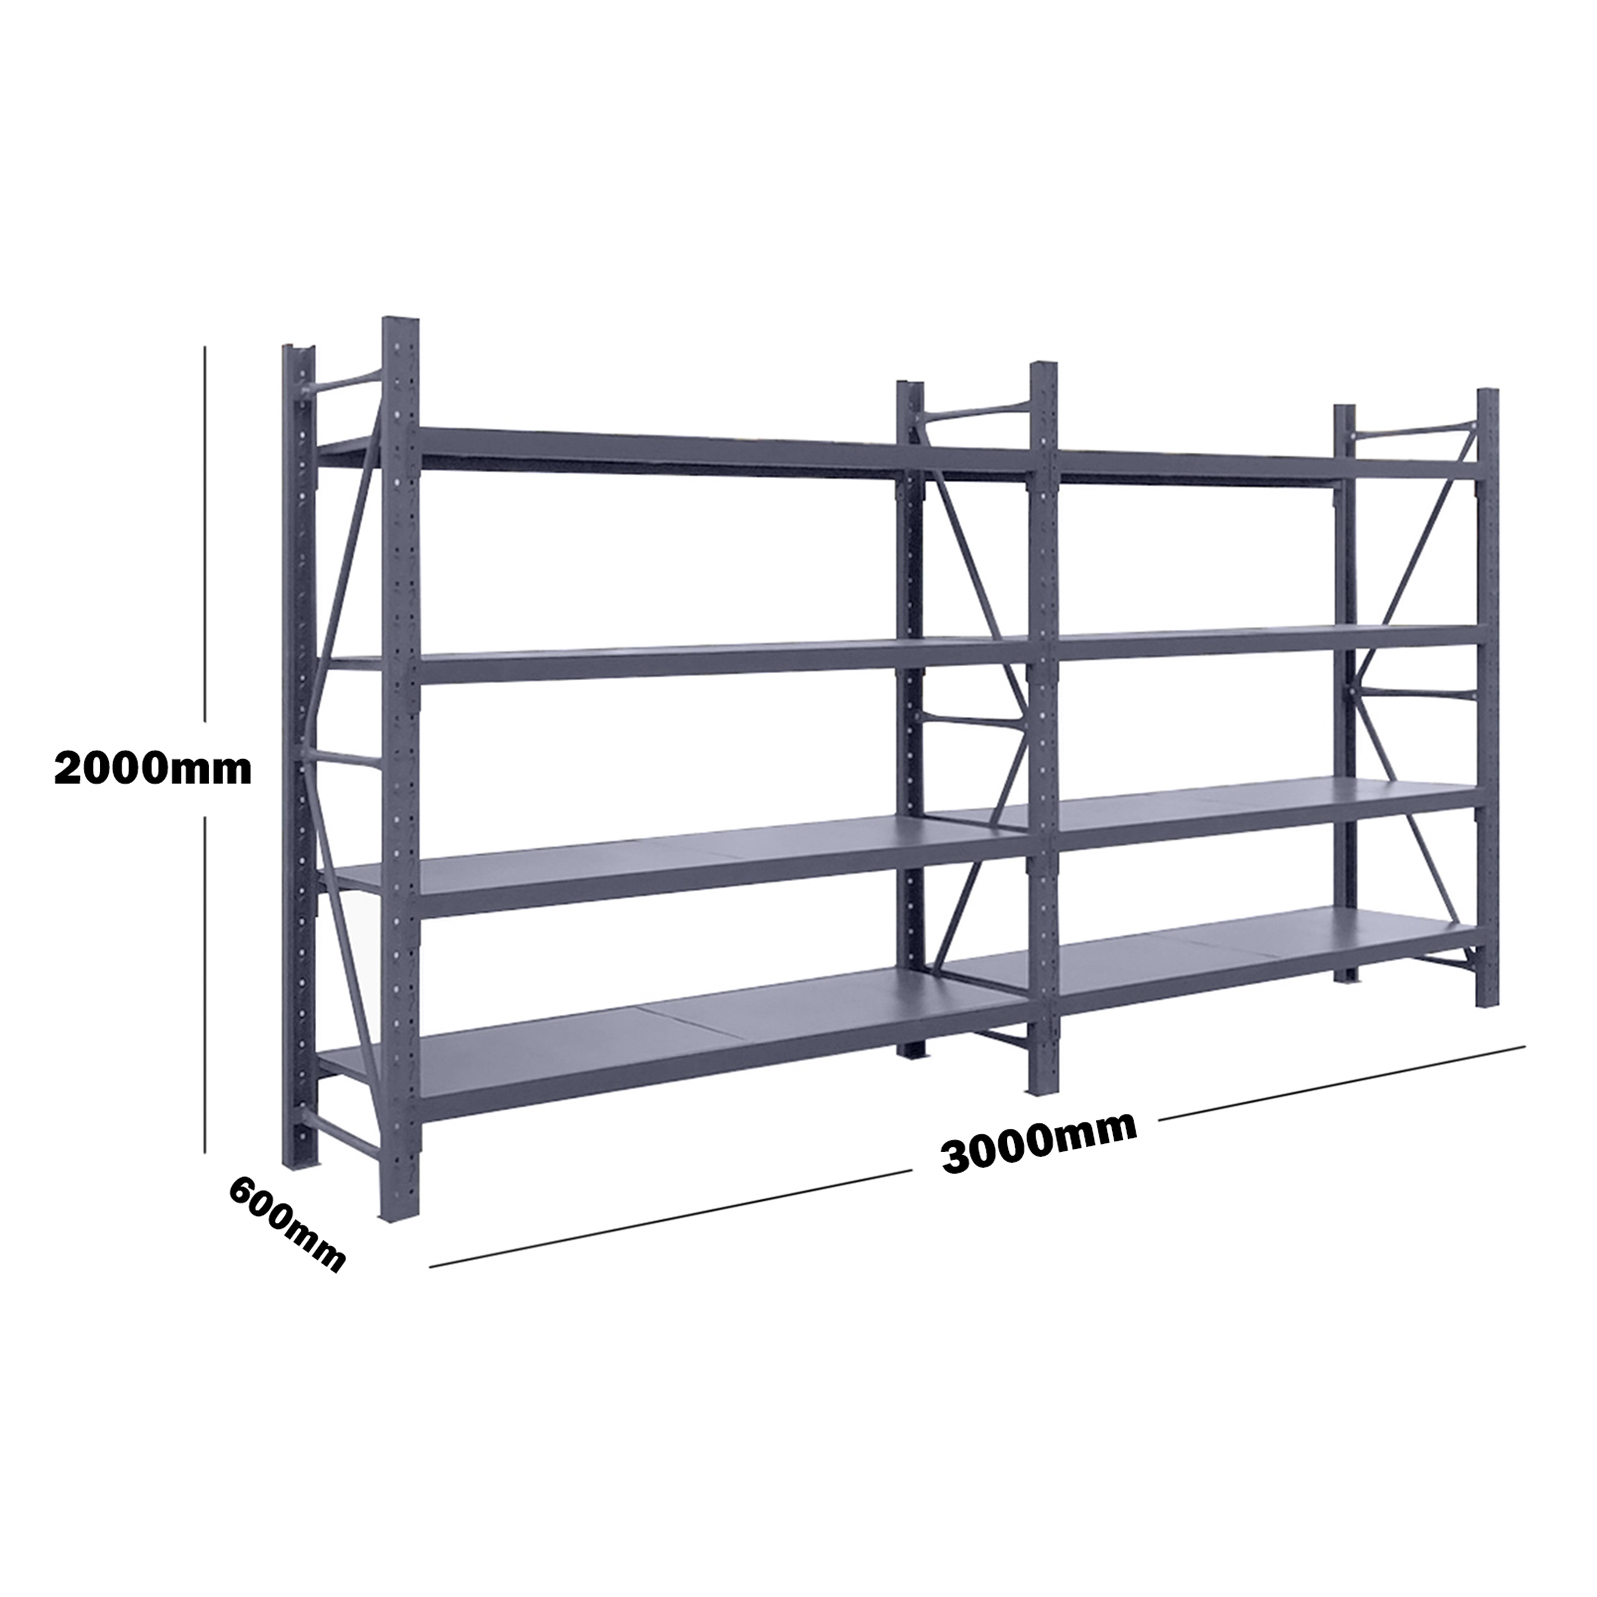 3M(L) x 2.0M(H) x 0.6M(D) Shelves Racking Metal Steel Charcoal 3020C